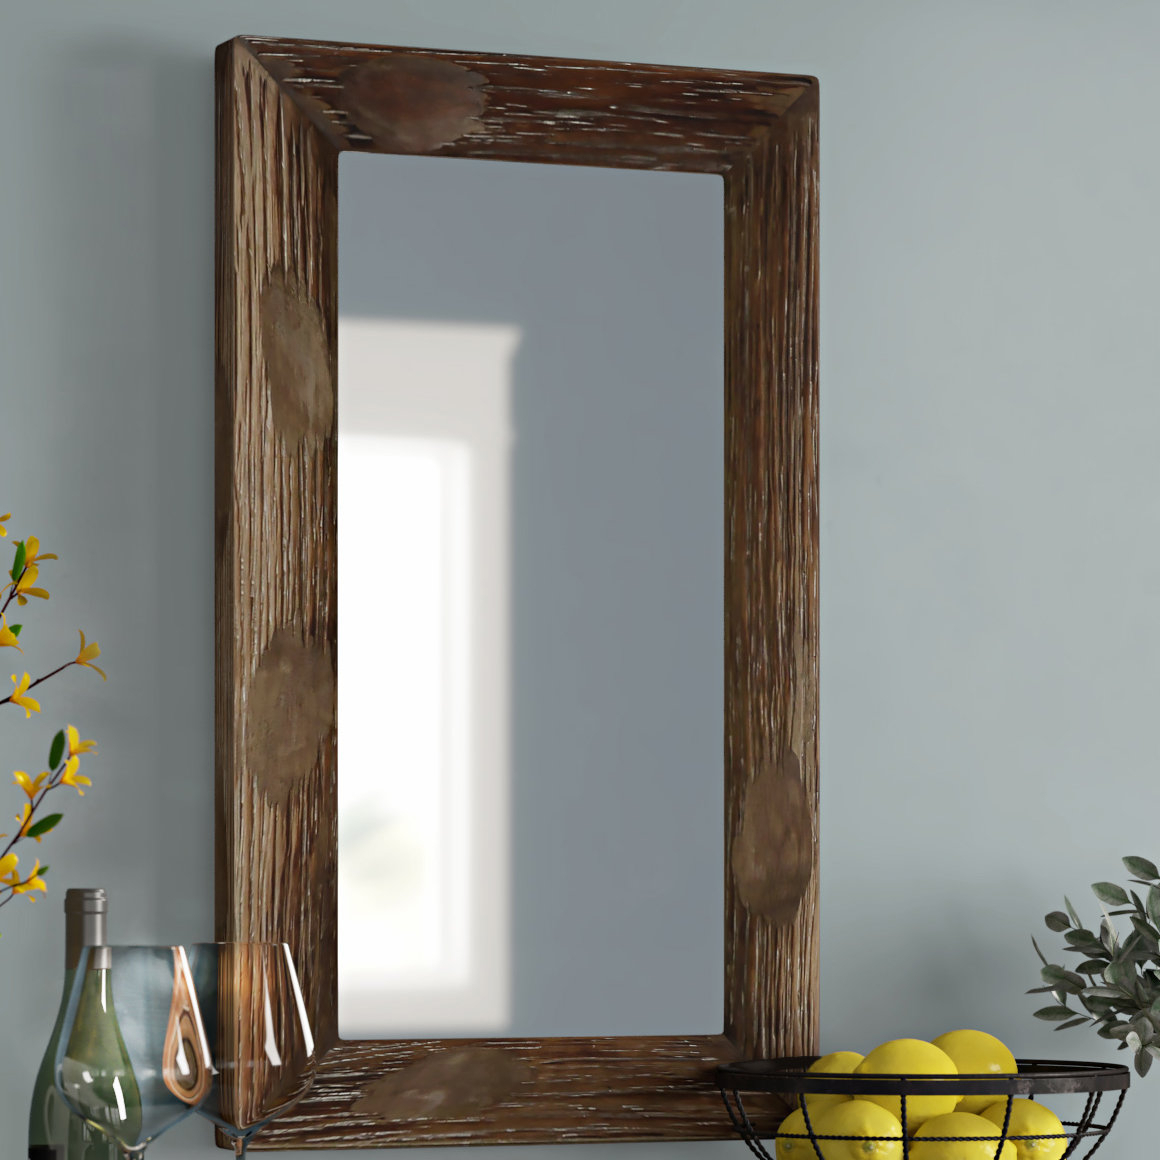 Tahara Rustic Wall Mirror Intended For Dedrick Decorative Framed Modern And Contemporary Wall Mirrors (Image 19 of 20)